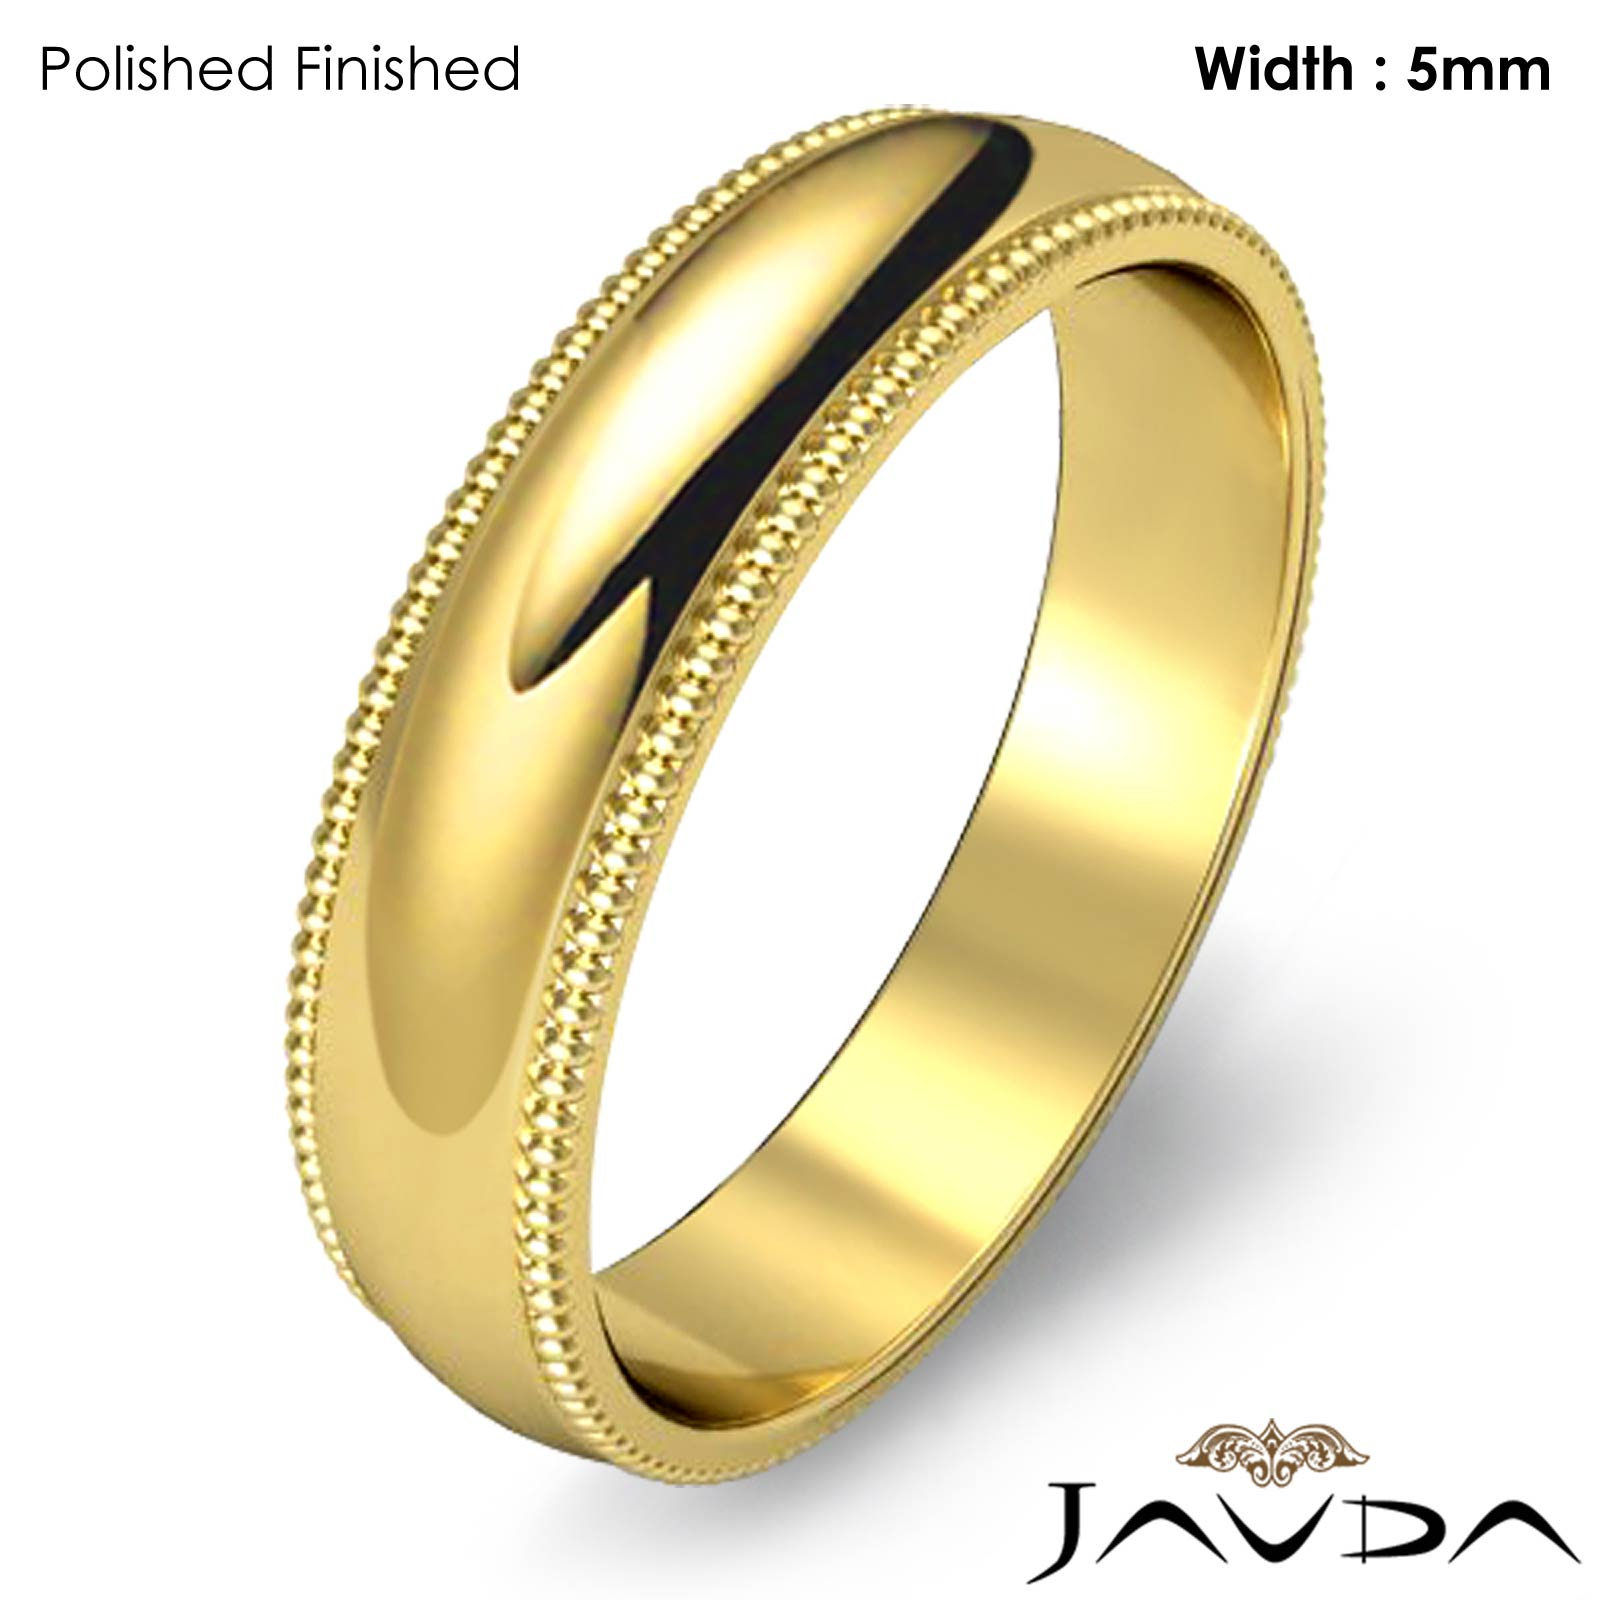 Men's Wedding Band 18k Gold Yellow Dome Milgrain Edge Solid Ring 5mm 5 ...